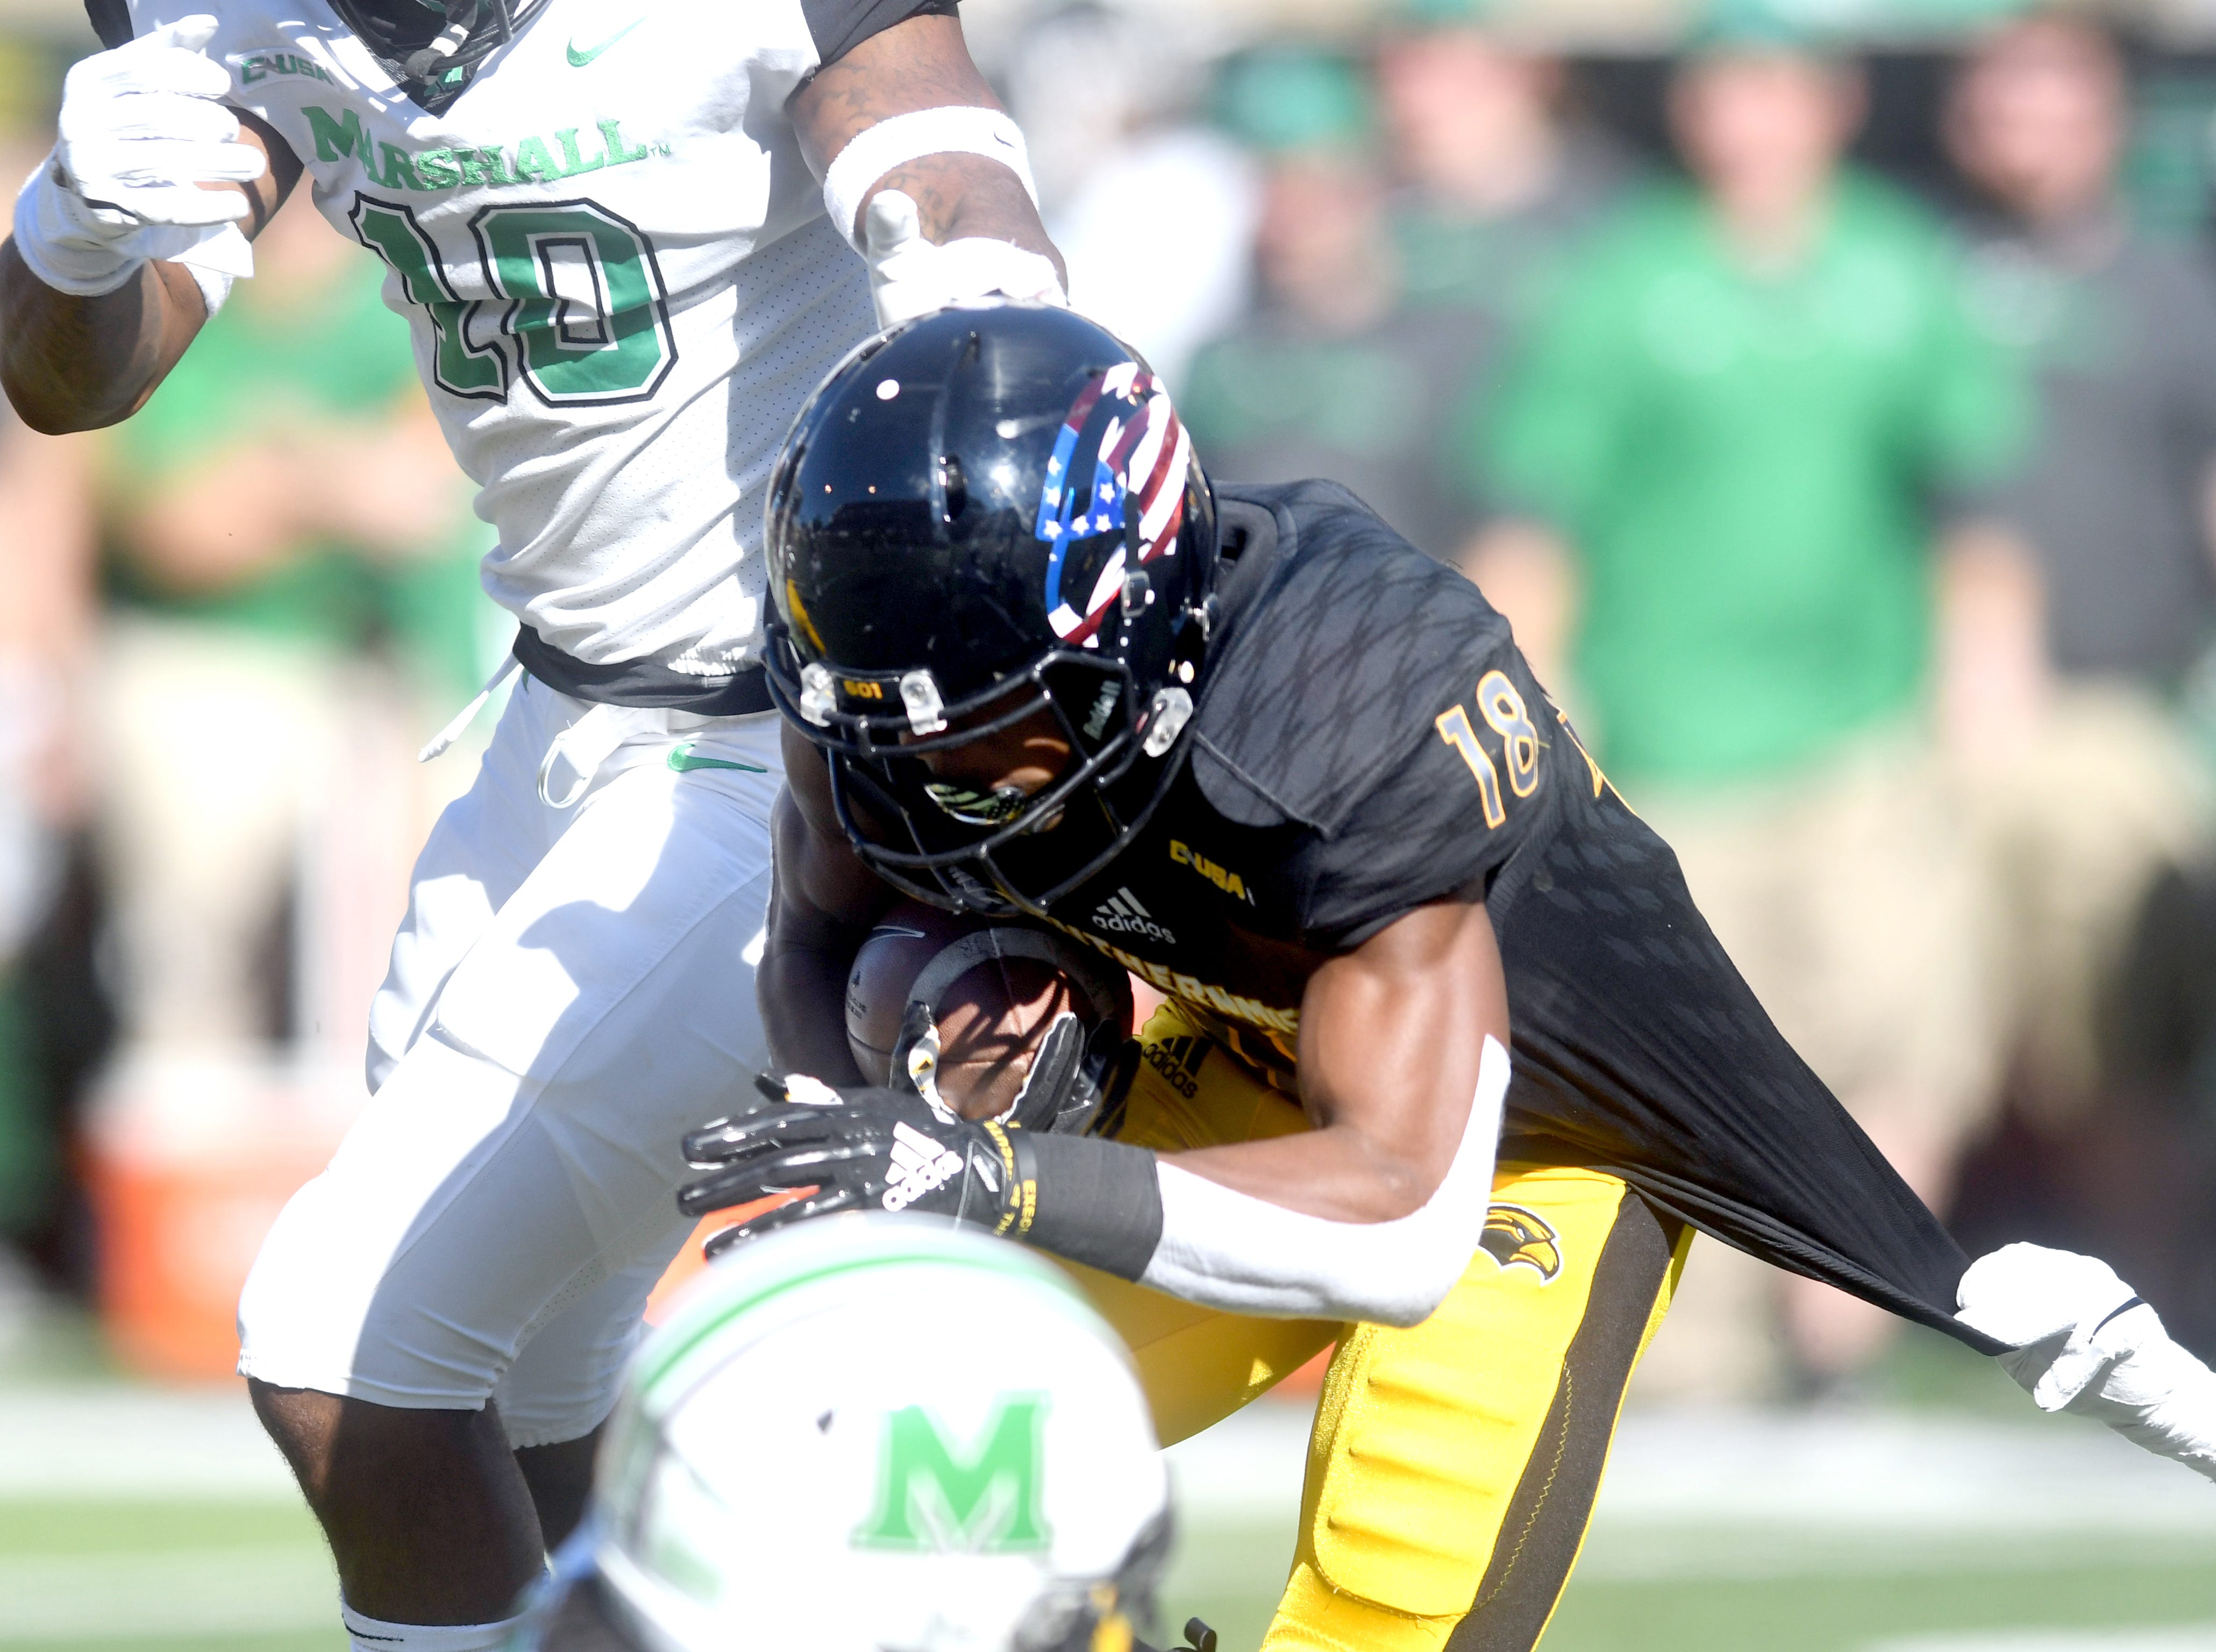 Southern Miss wide receiver De'Michael Harris returns the ball in a game against Marshall at M.M. Roberts Stadium on Saturday, November 3, 2018.